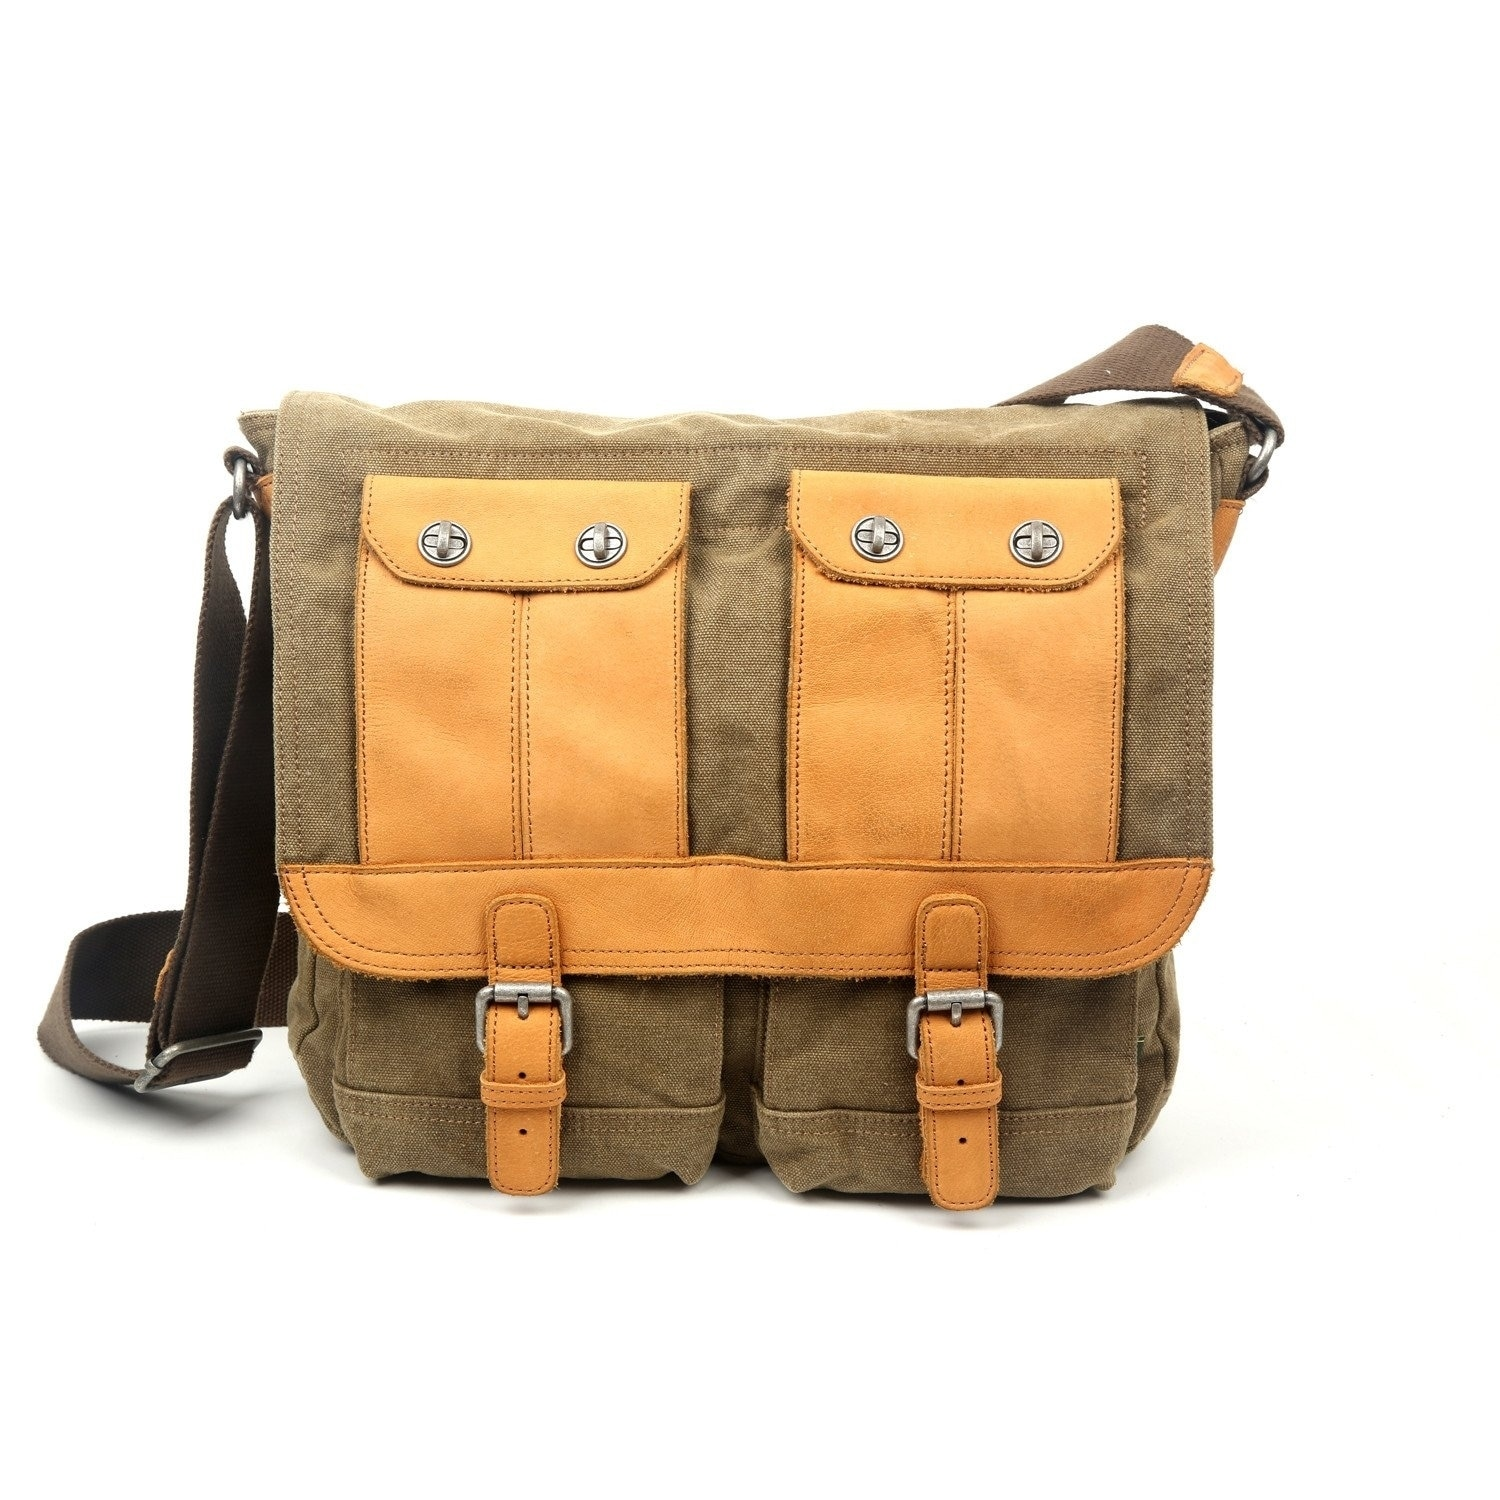 a300ceee3453 Details about TSD Brand Valley River Canvas Messenger Bag